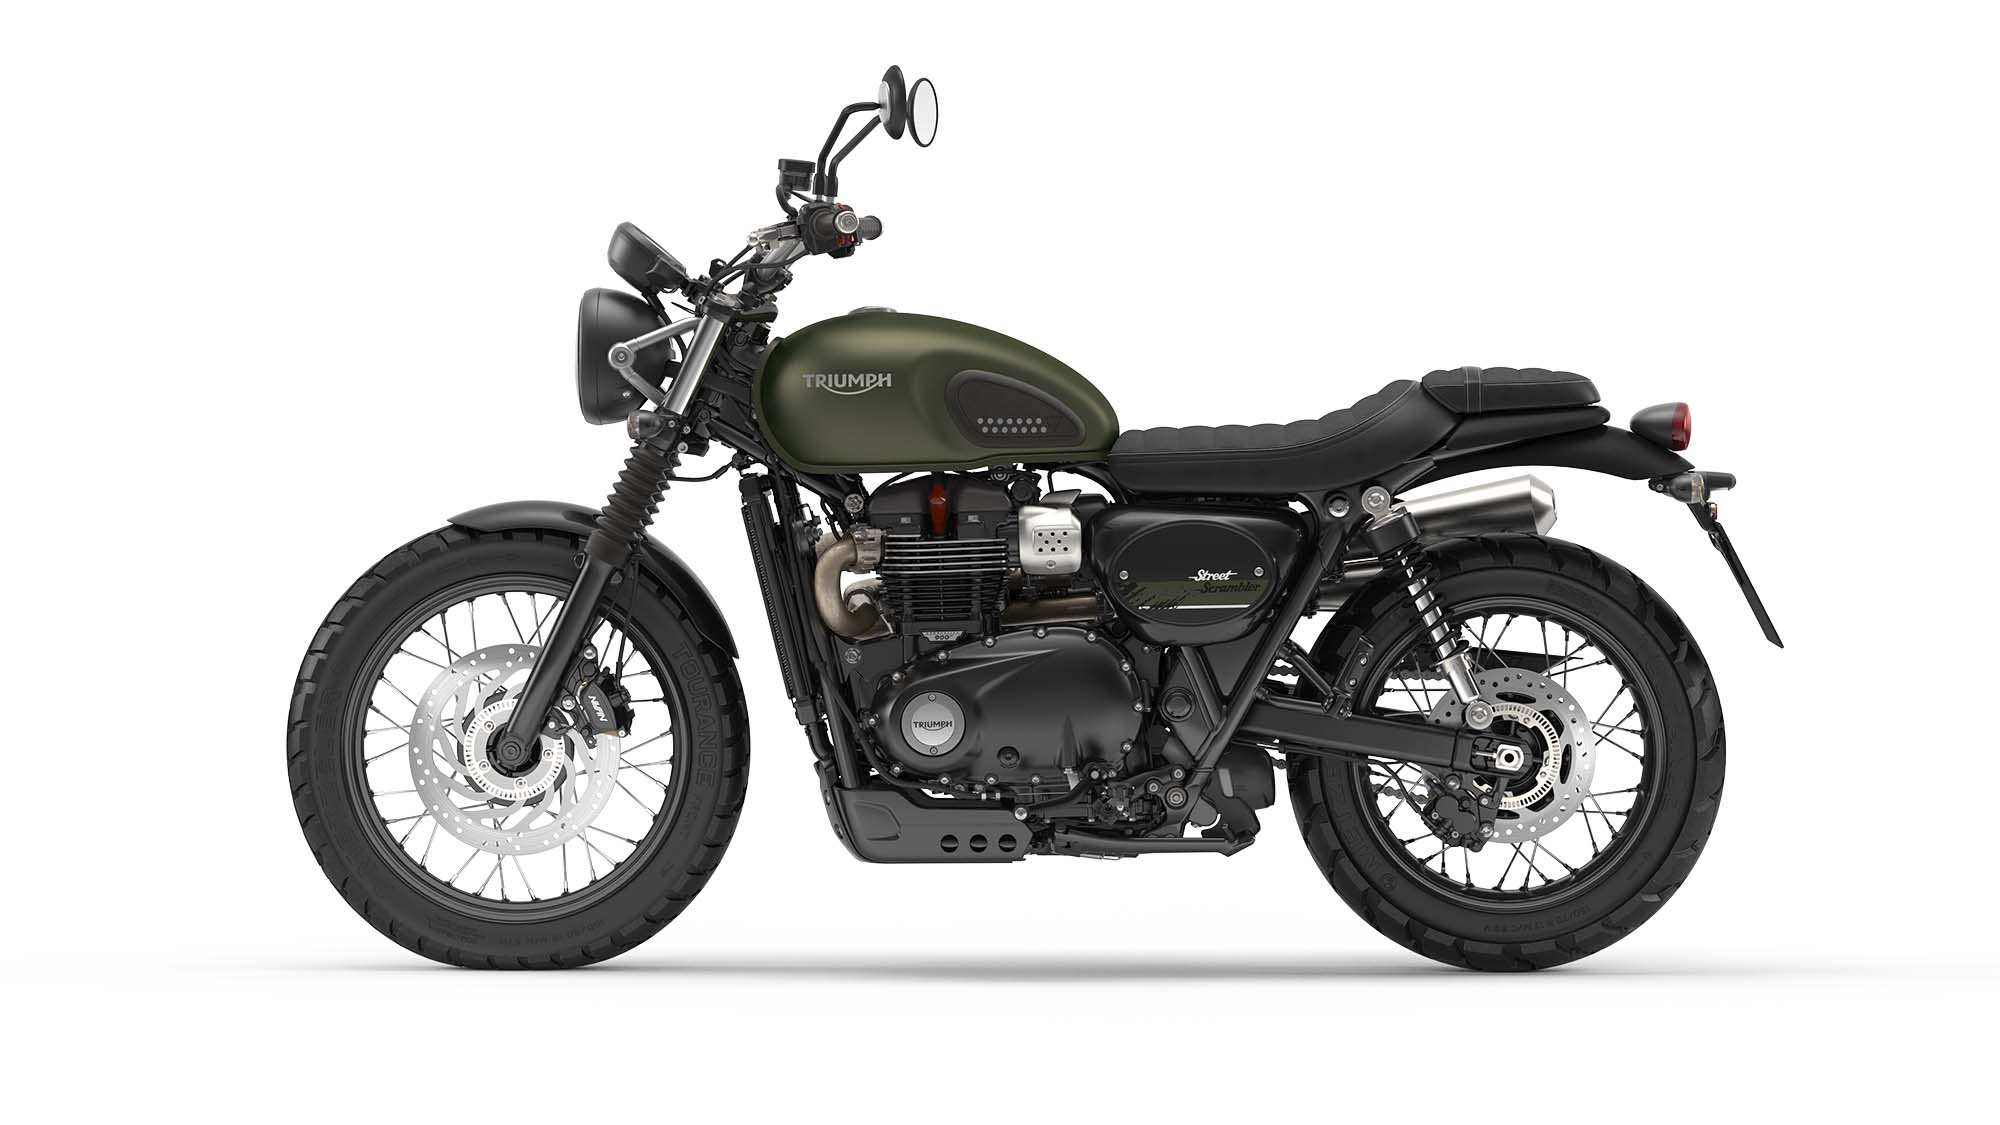 triumph street scrambler refined heritage from the uk. Black Bedroom Furniture Sets. Home Design Ideas